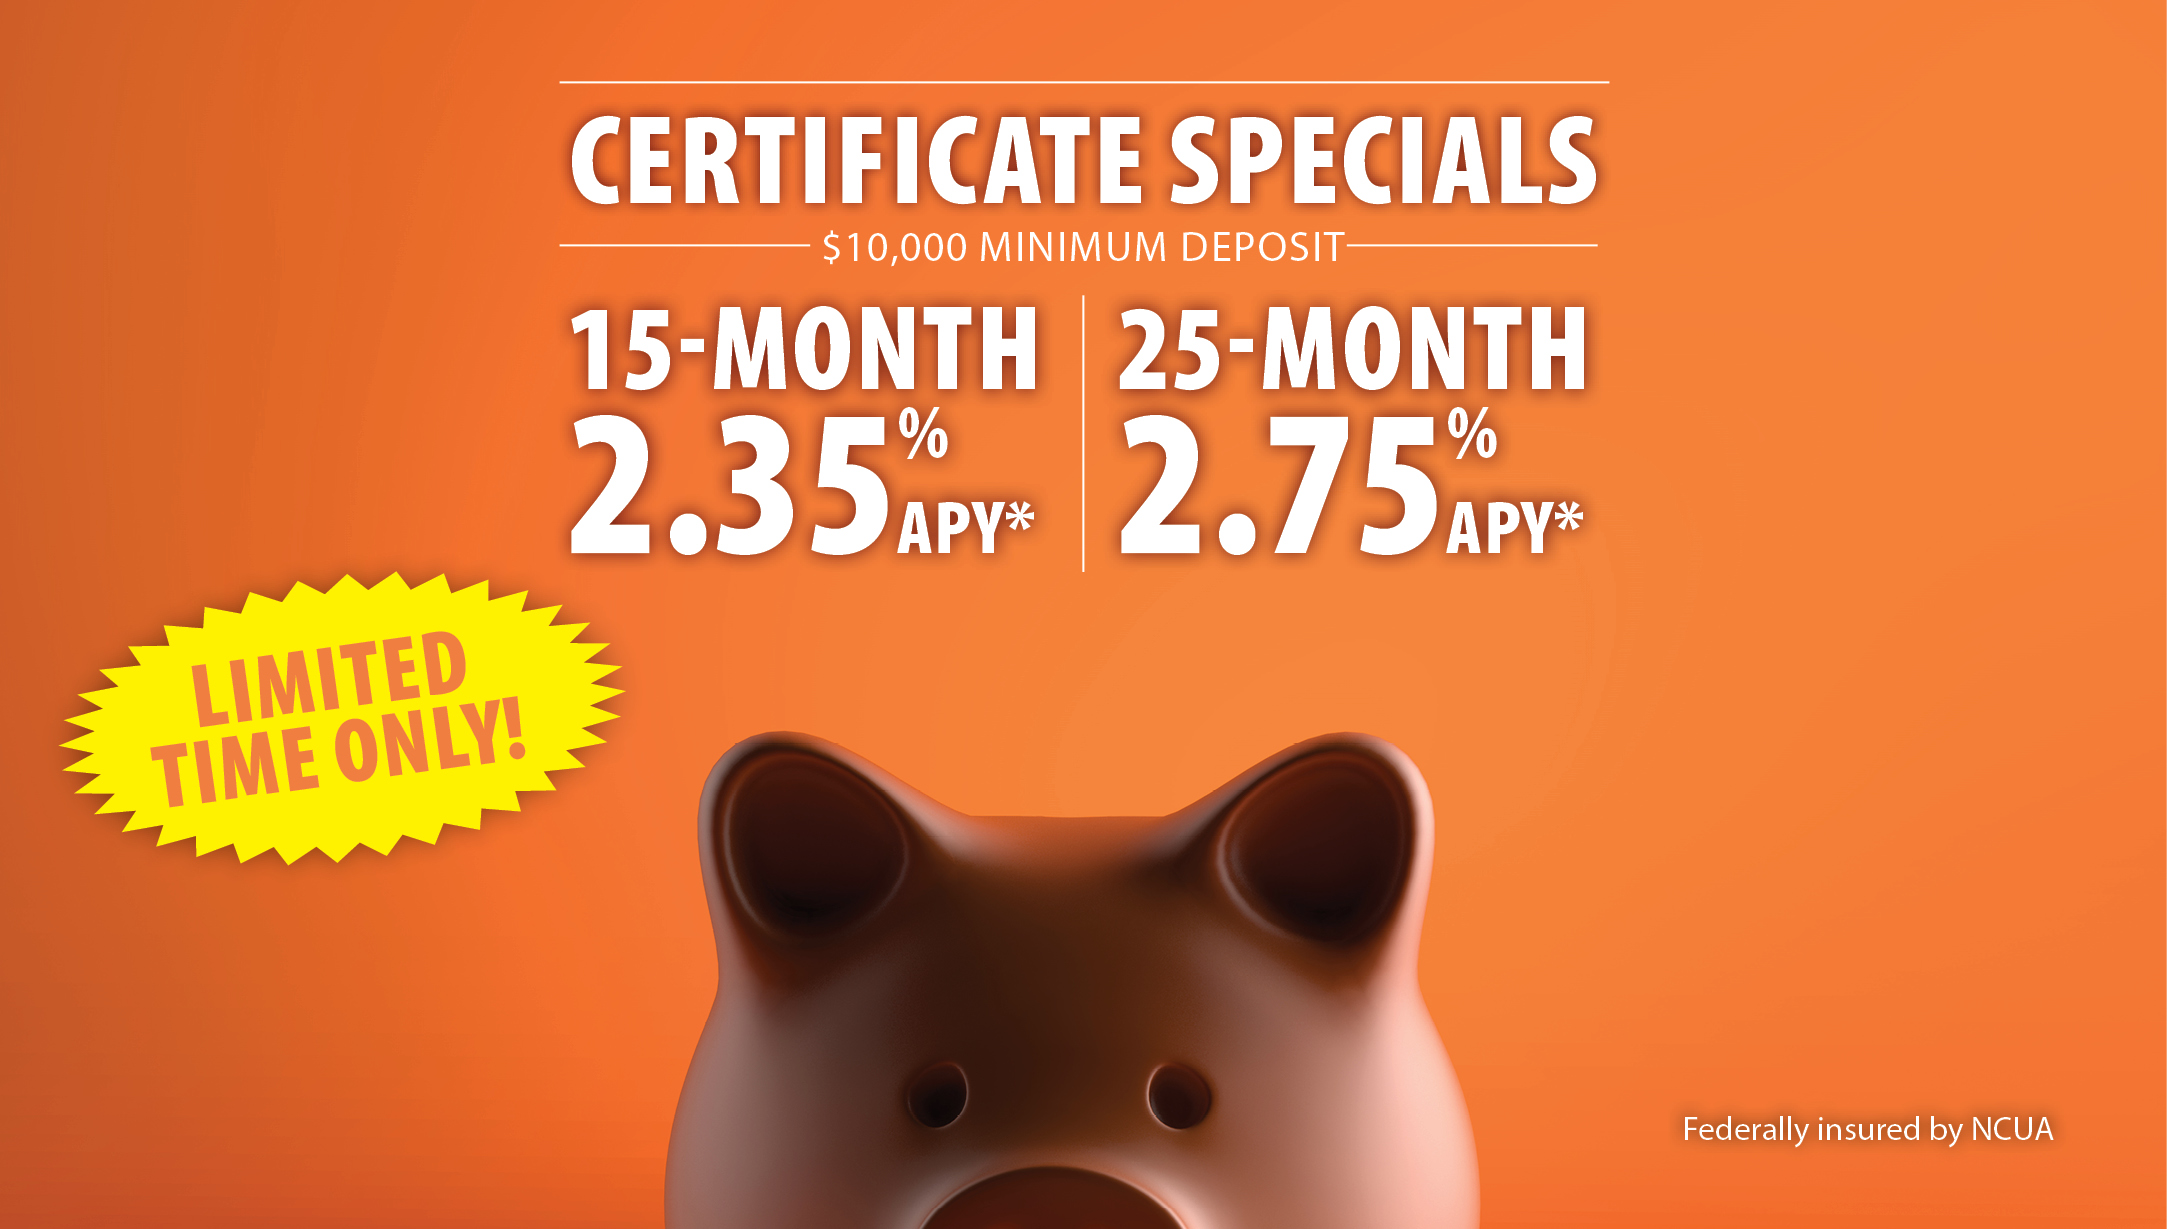 Certificate Specials Certificates Rockland County Palisades